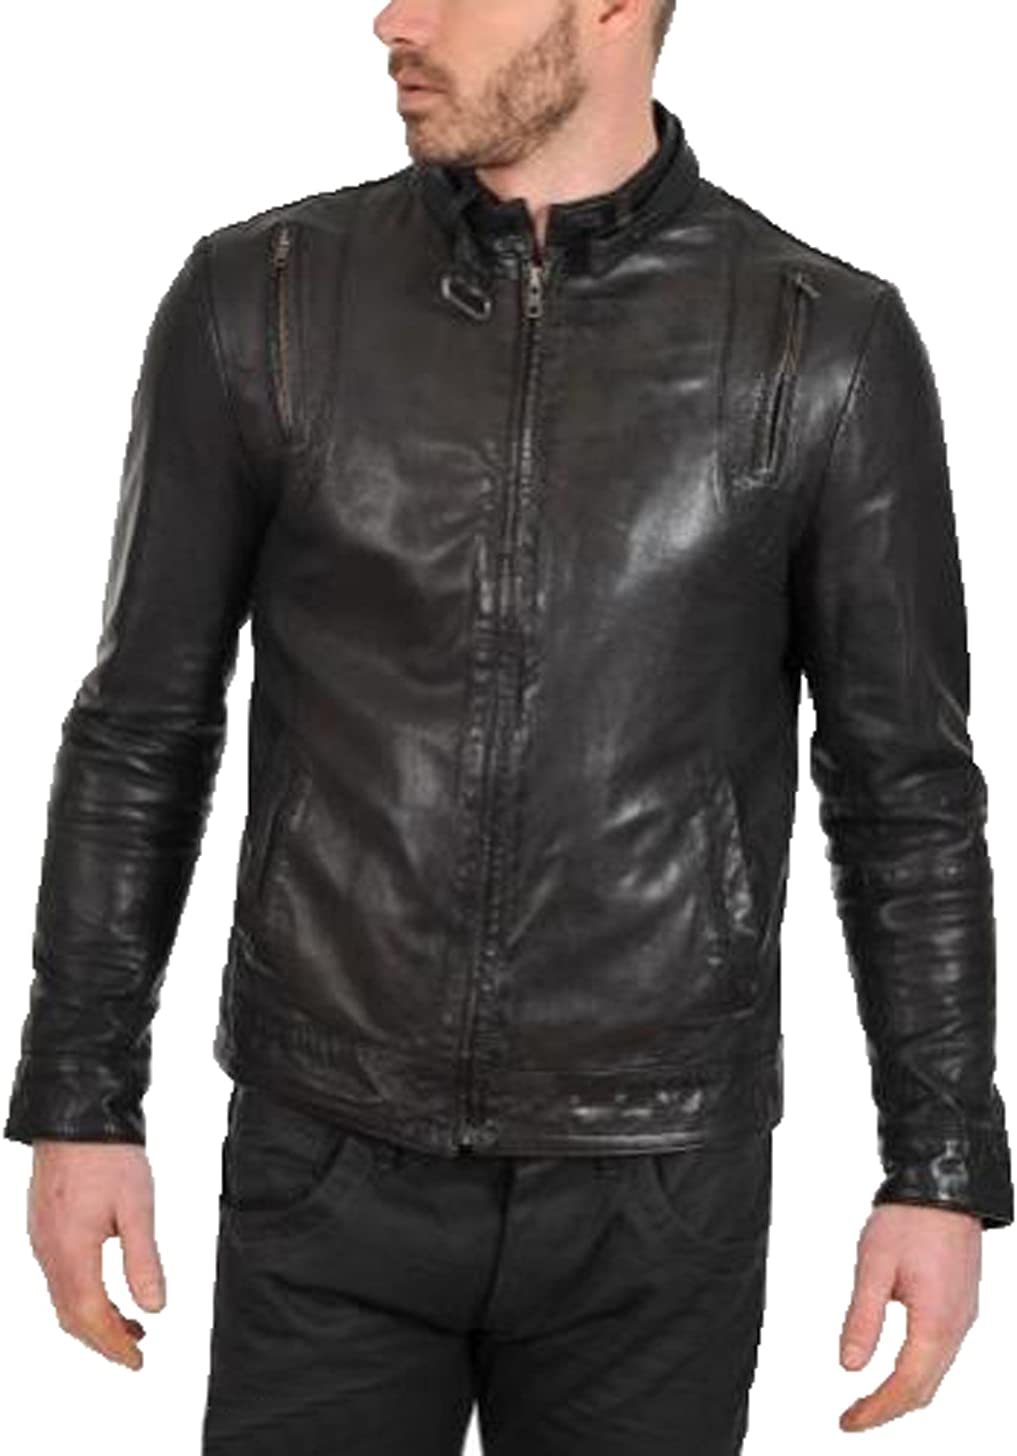 Men Leather Jacket Coat Motorcycle Biker Slim Fit Outwear Jackets T1144